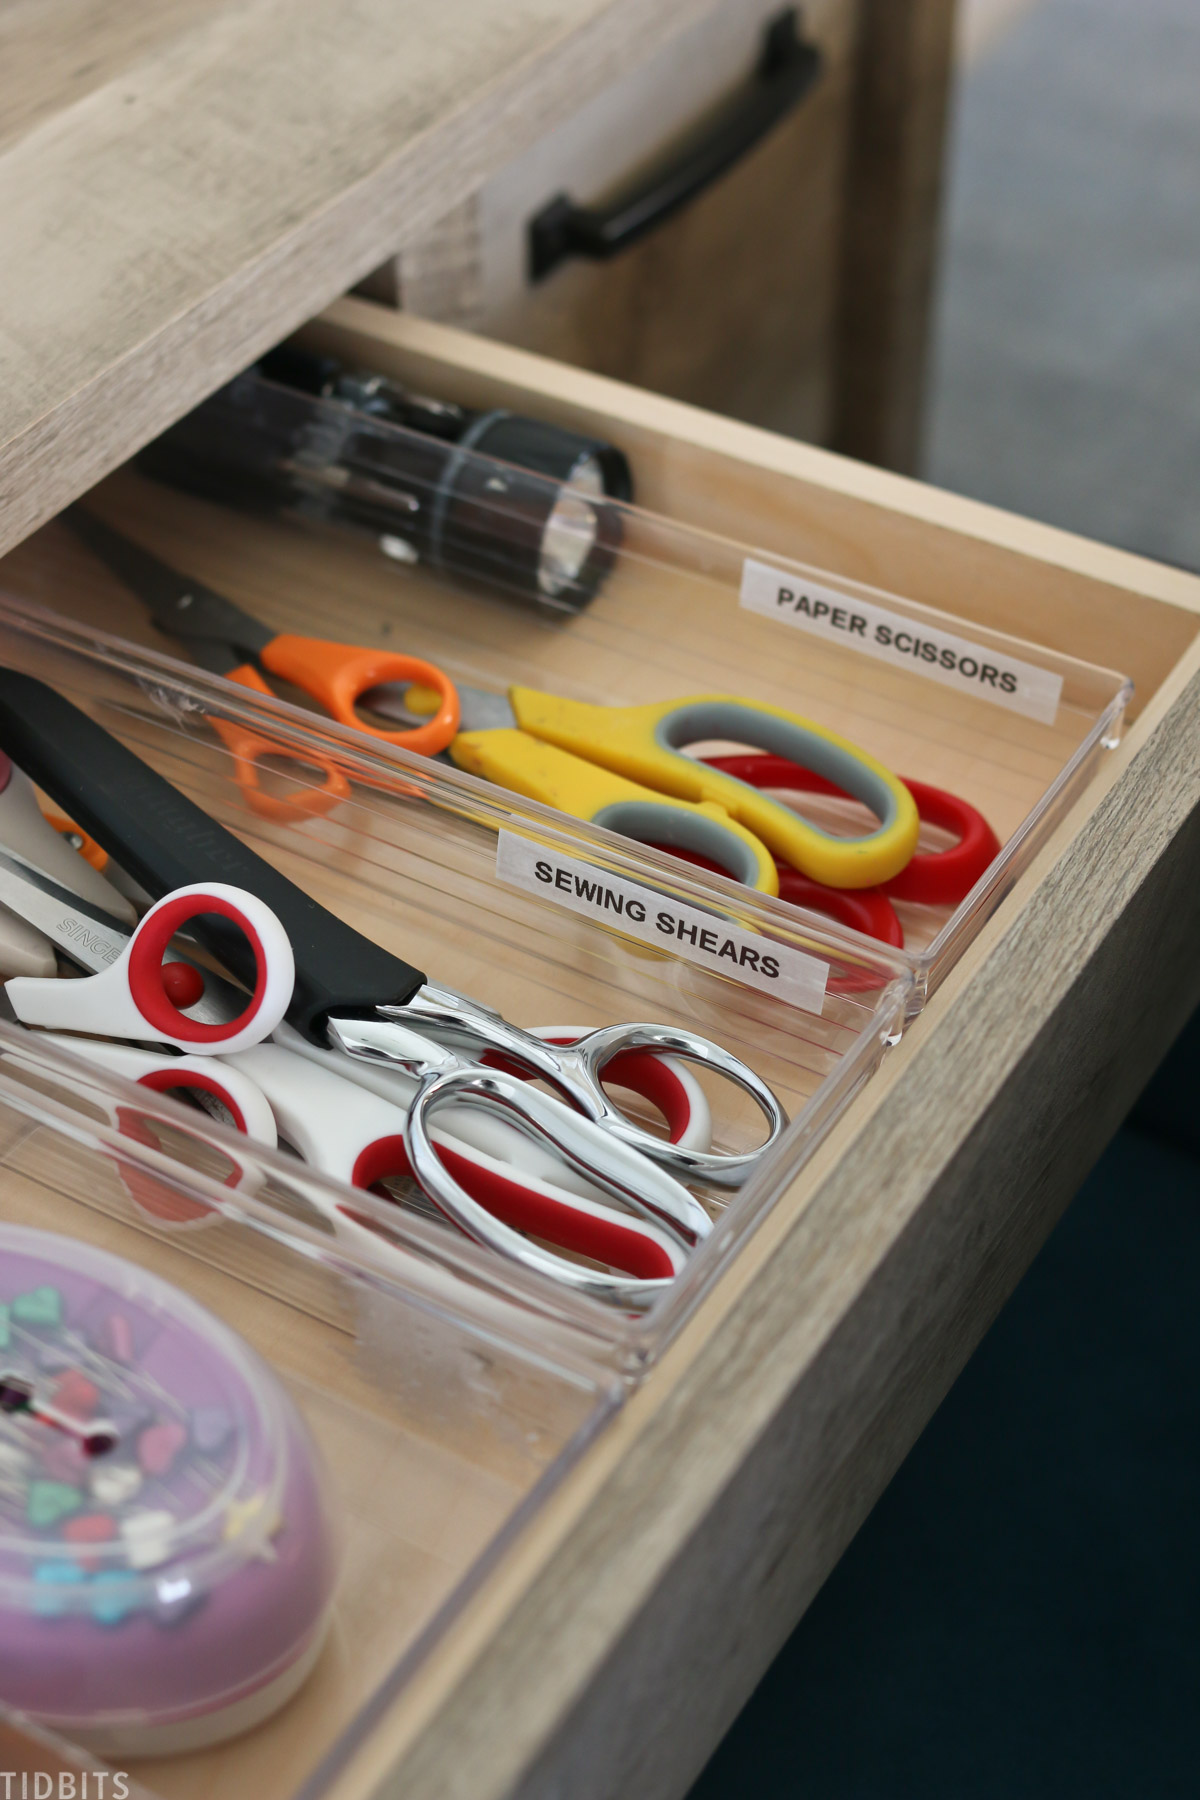 desk drawer is opened to show three containers organizing paper scissors, sewing shears, and sewing needles